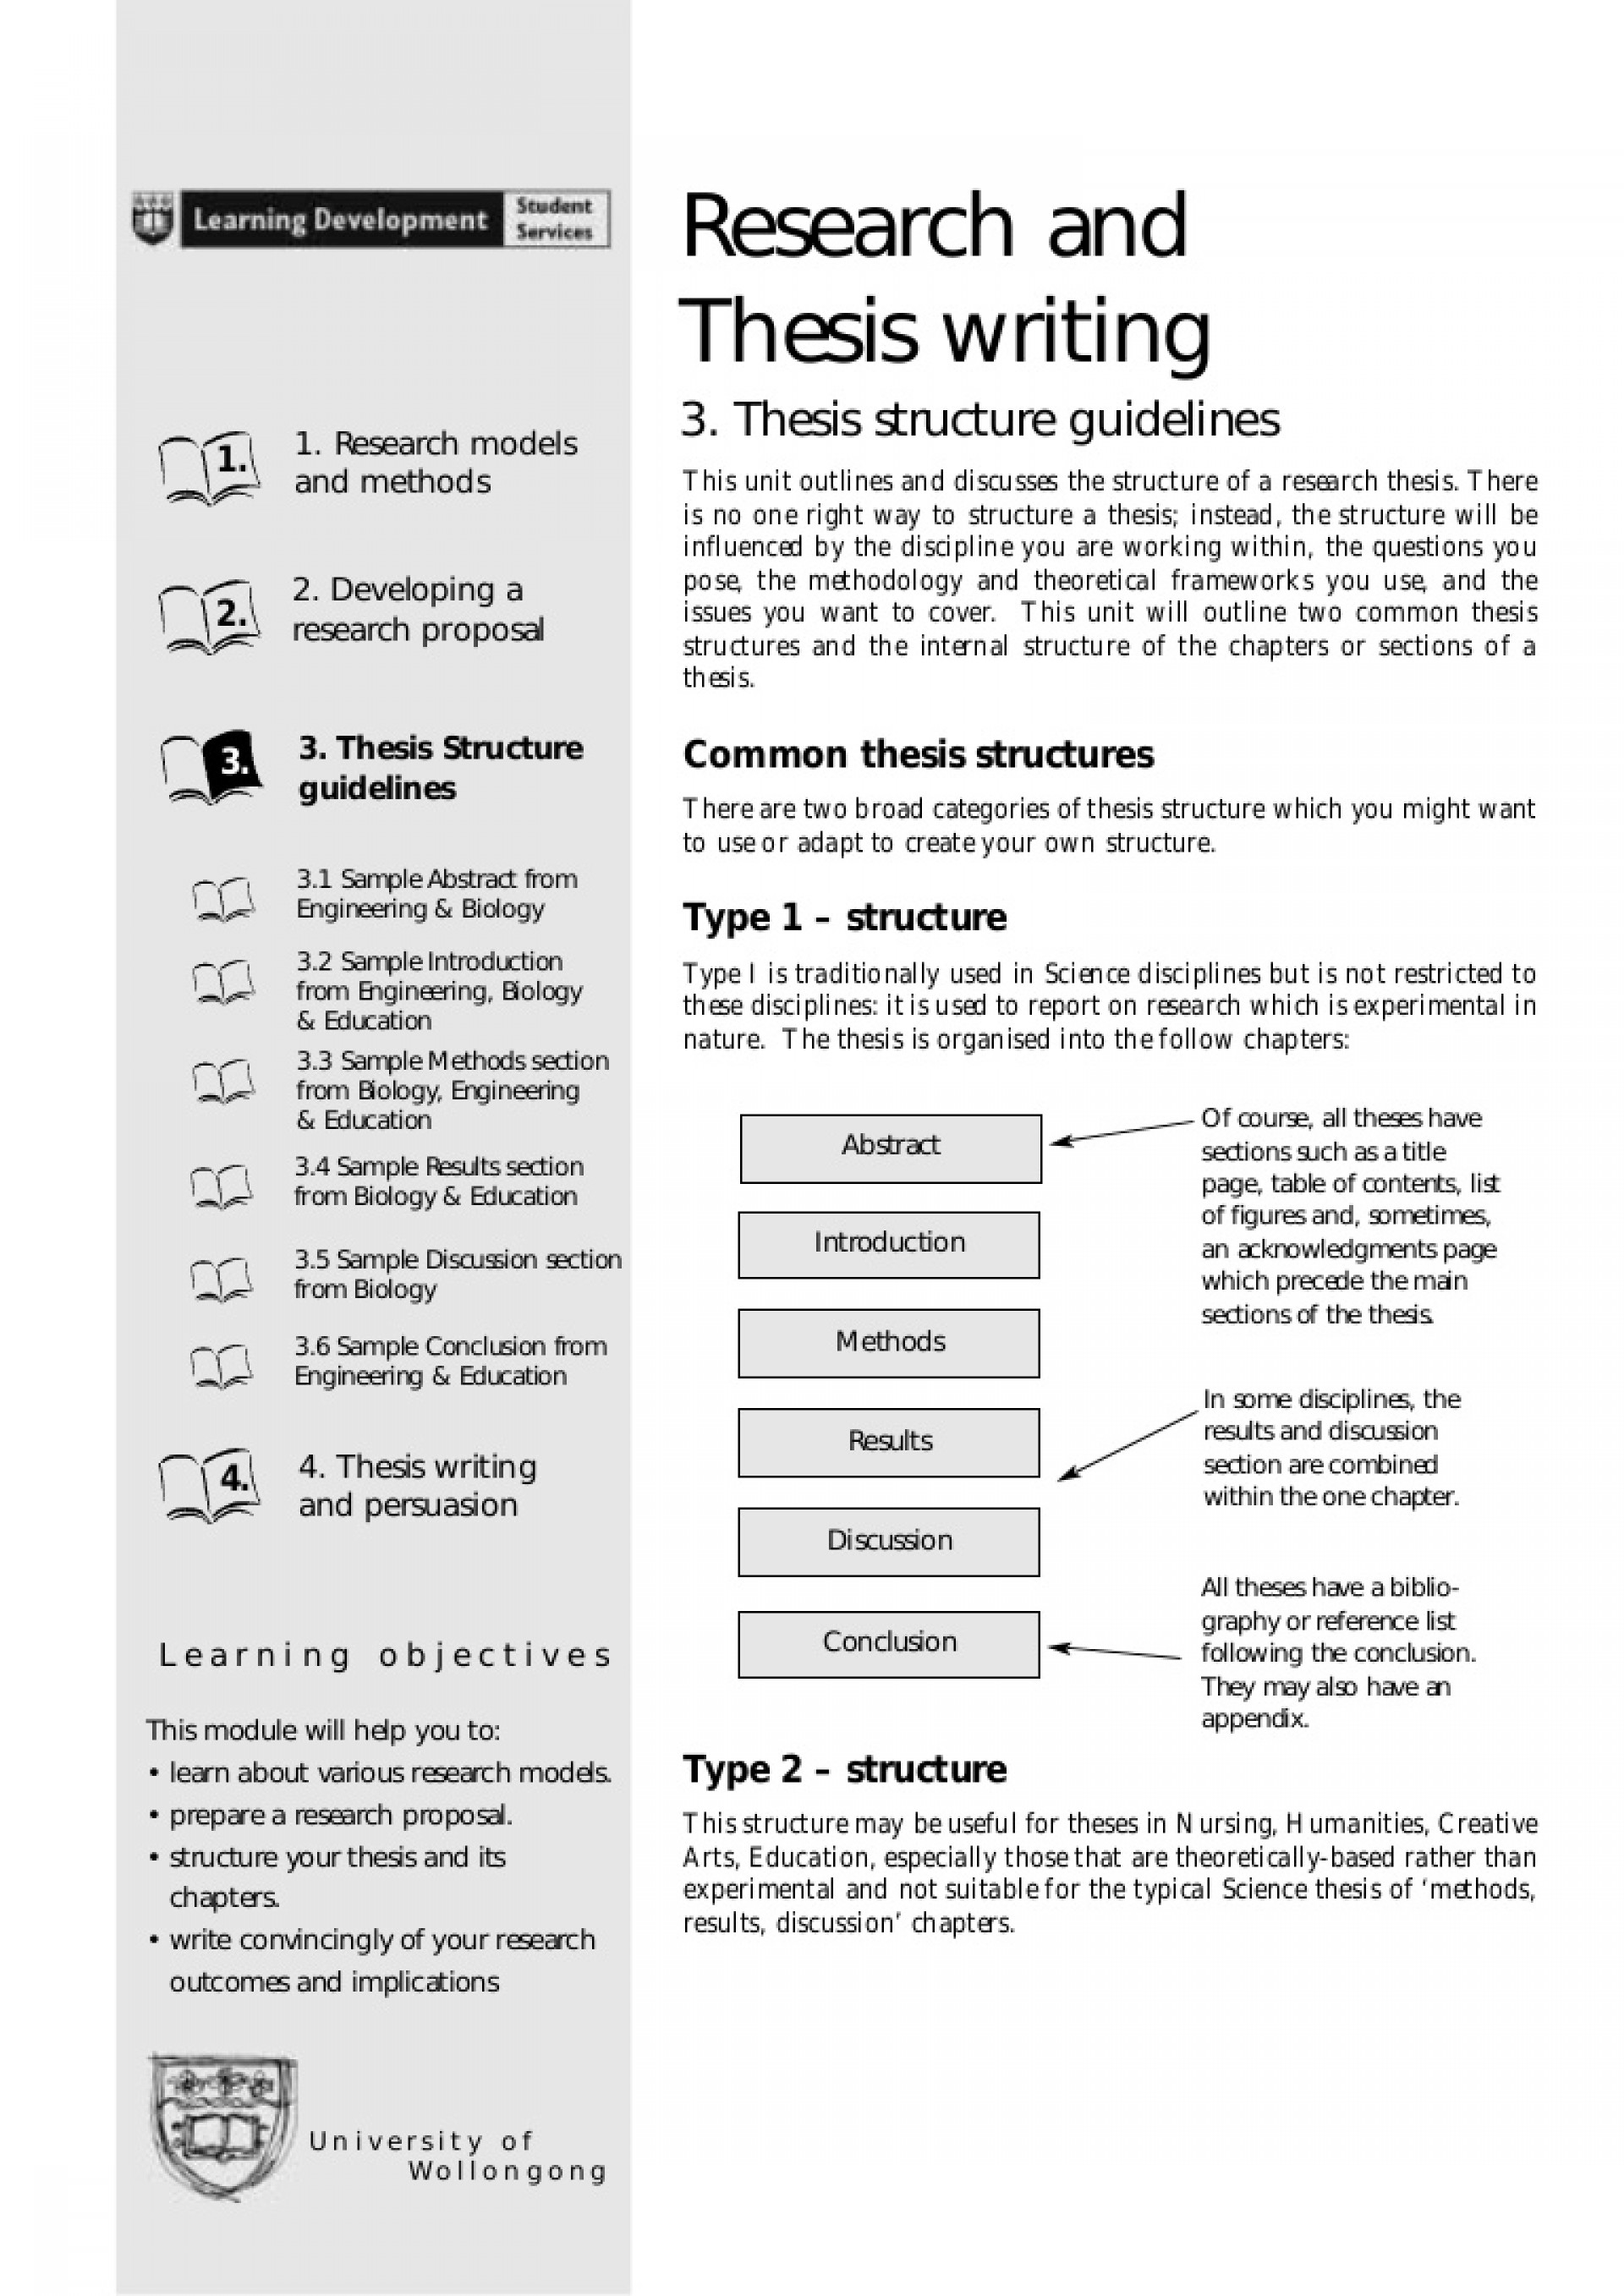 019 How To Write Research Paper Methods Section Researchtheseswriting Phpapp01 Thumbnail Phenomenal A The Of Wallet Quantitative 1920